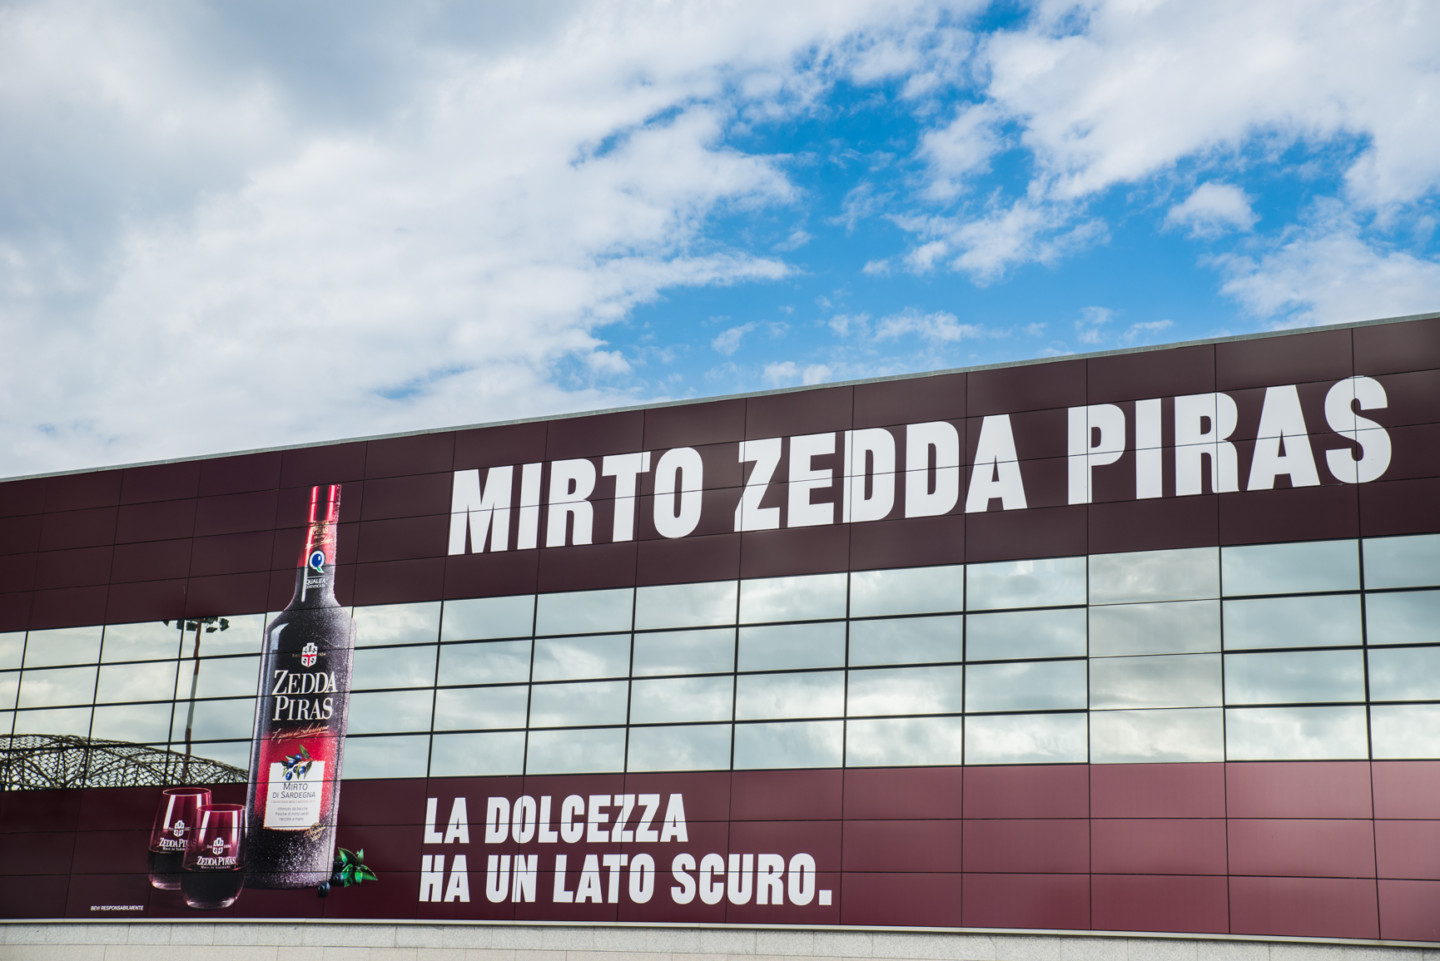 zedda-piras-mirto-campari-sardegna-travel-valentina-coco-fashion-blogger